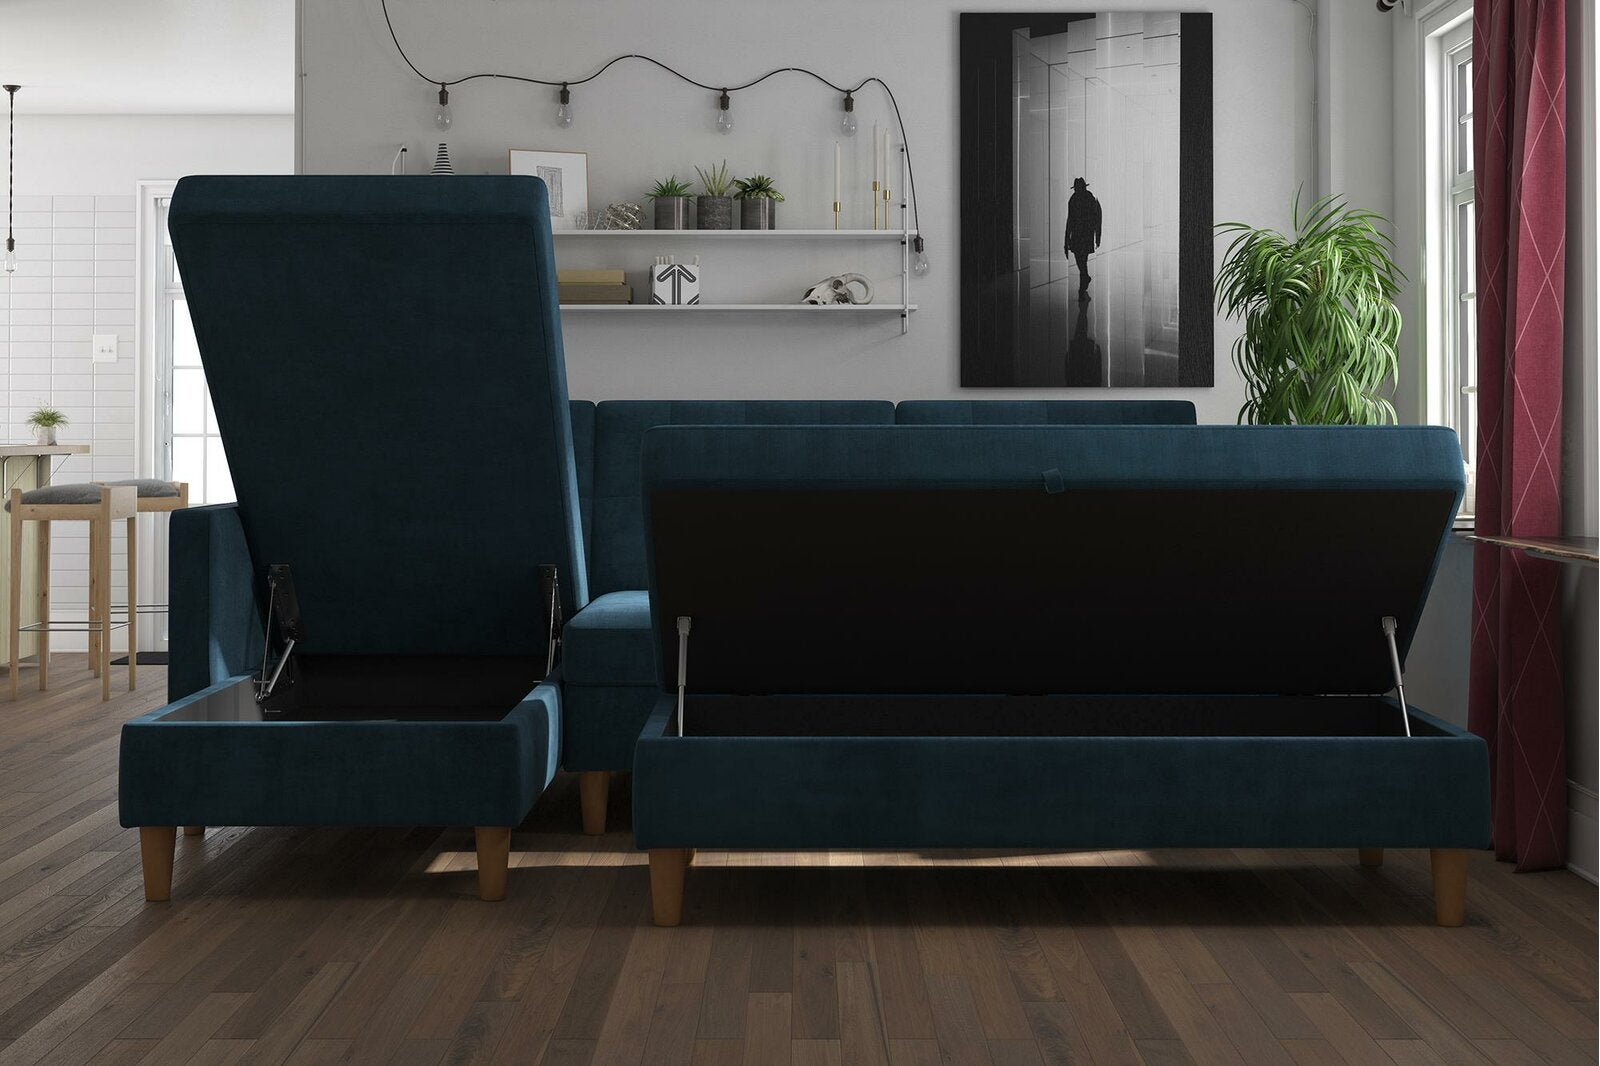 couch with cushions that move up to reveal surface